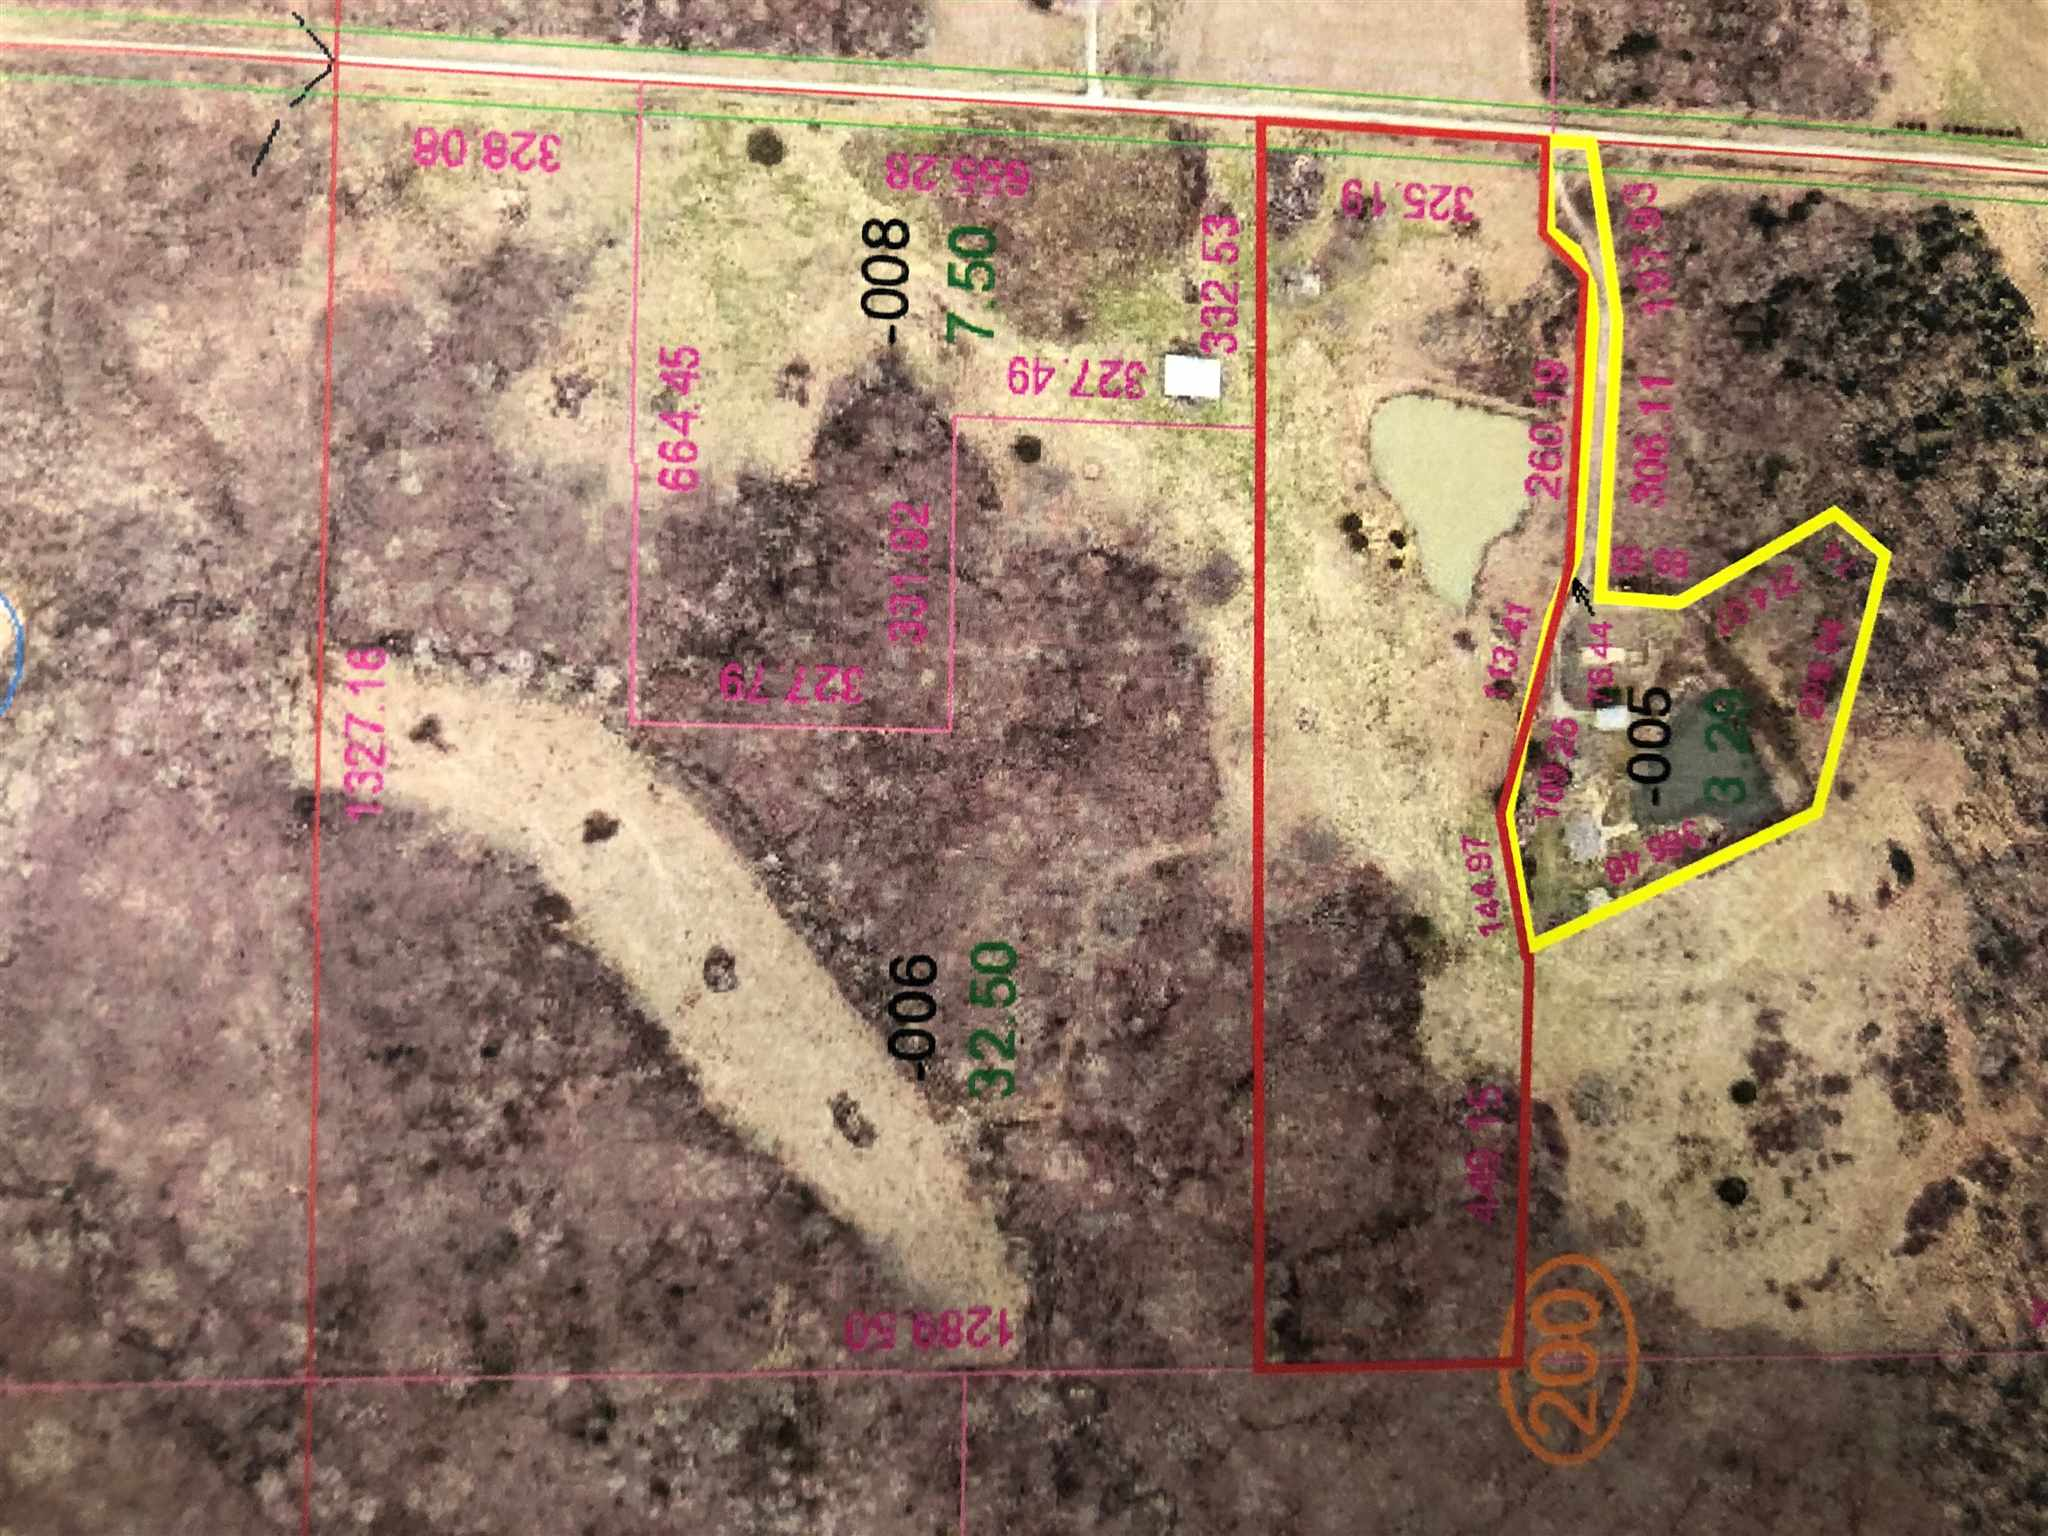 010 Brushy Creek Road, Carrier Mills, Illinois 62917, ,Lots And Land,For Sale,010 Brushy Creek Road,EB438973